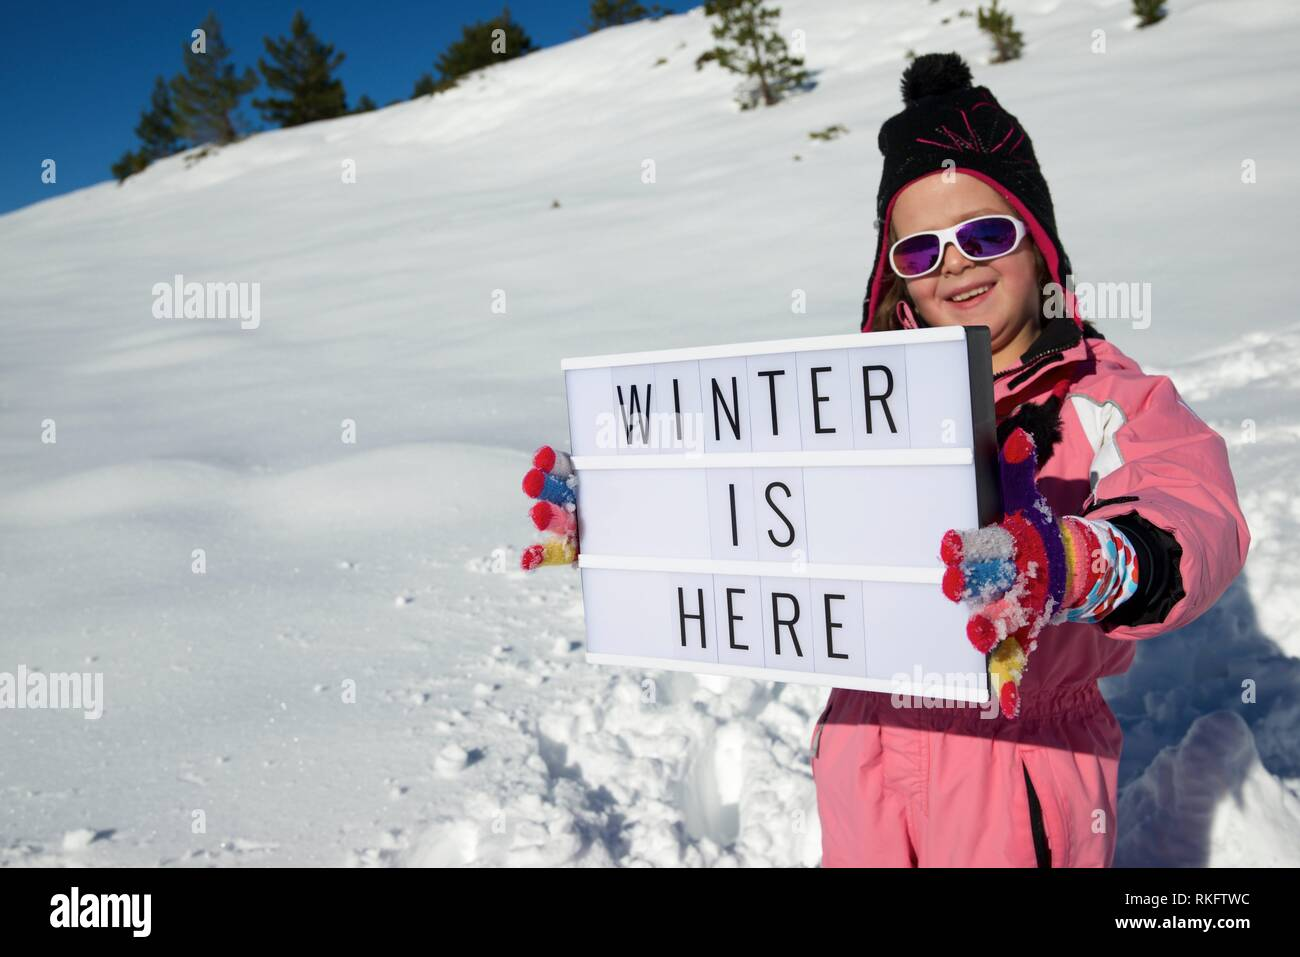 Slogan ''winter is here'' held by a girl in a snowy landscape. - Stock Image